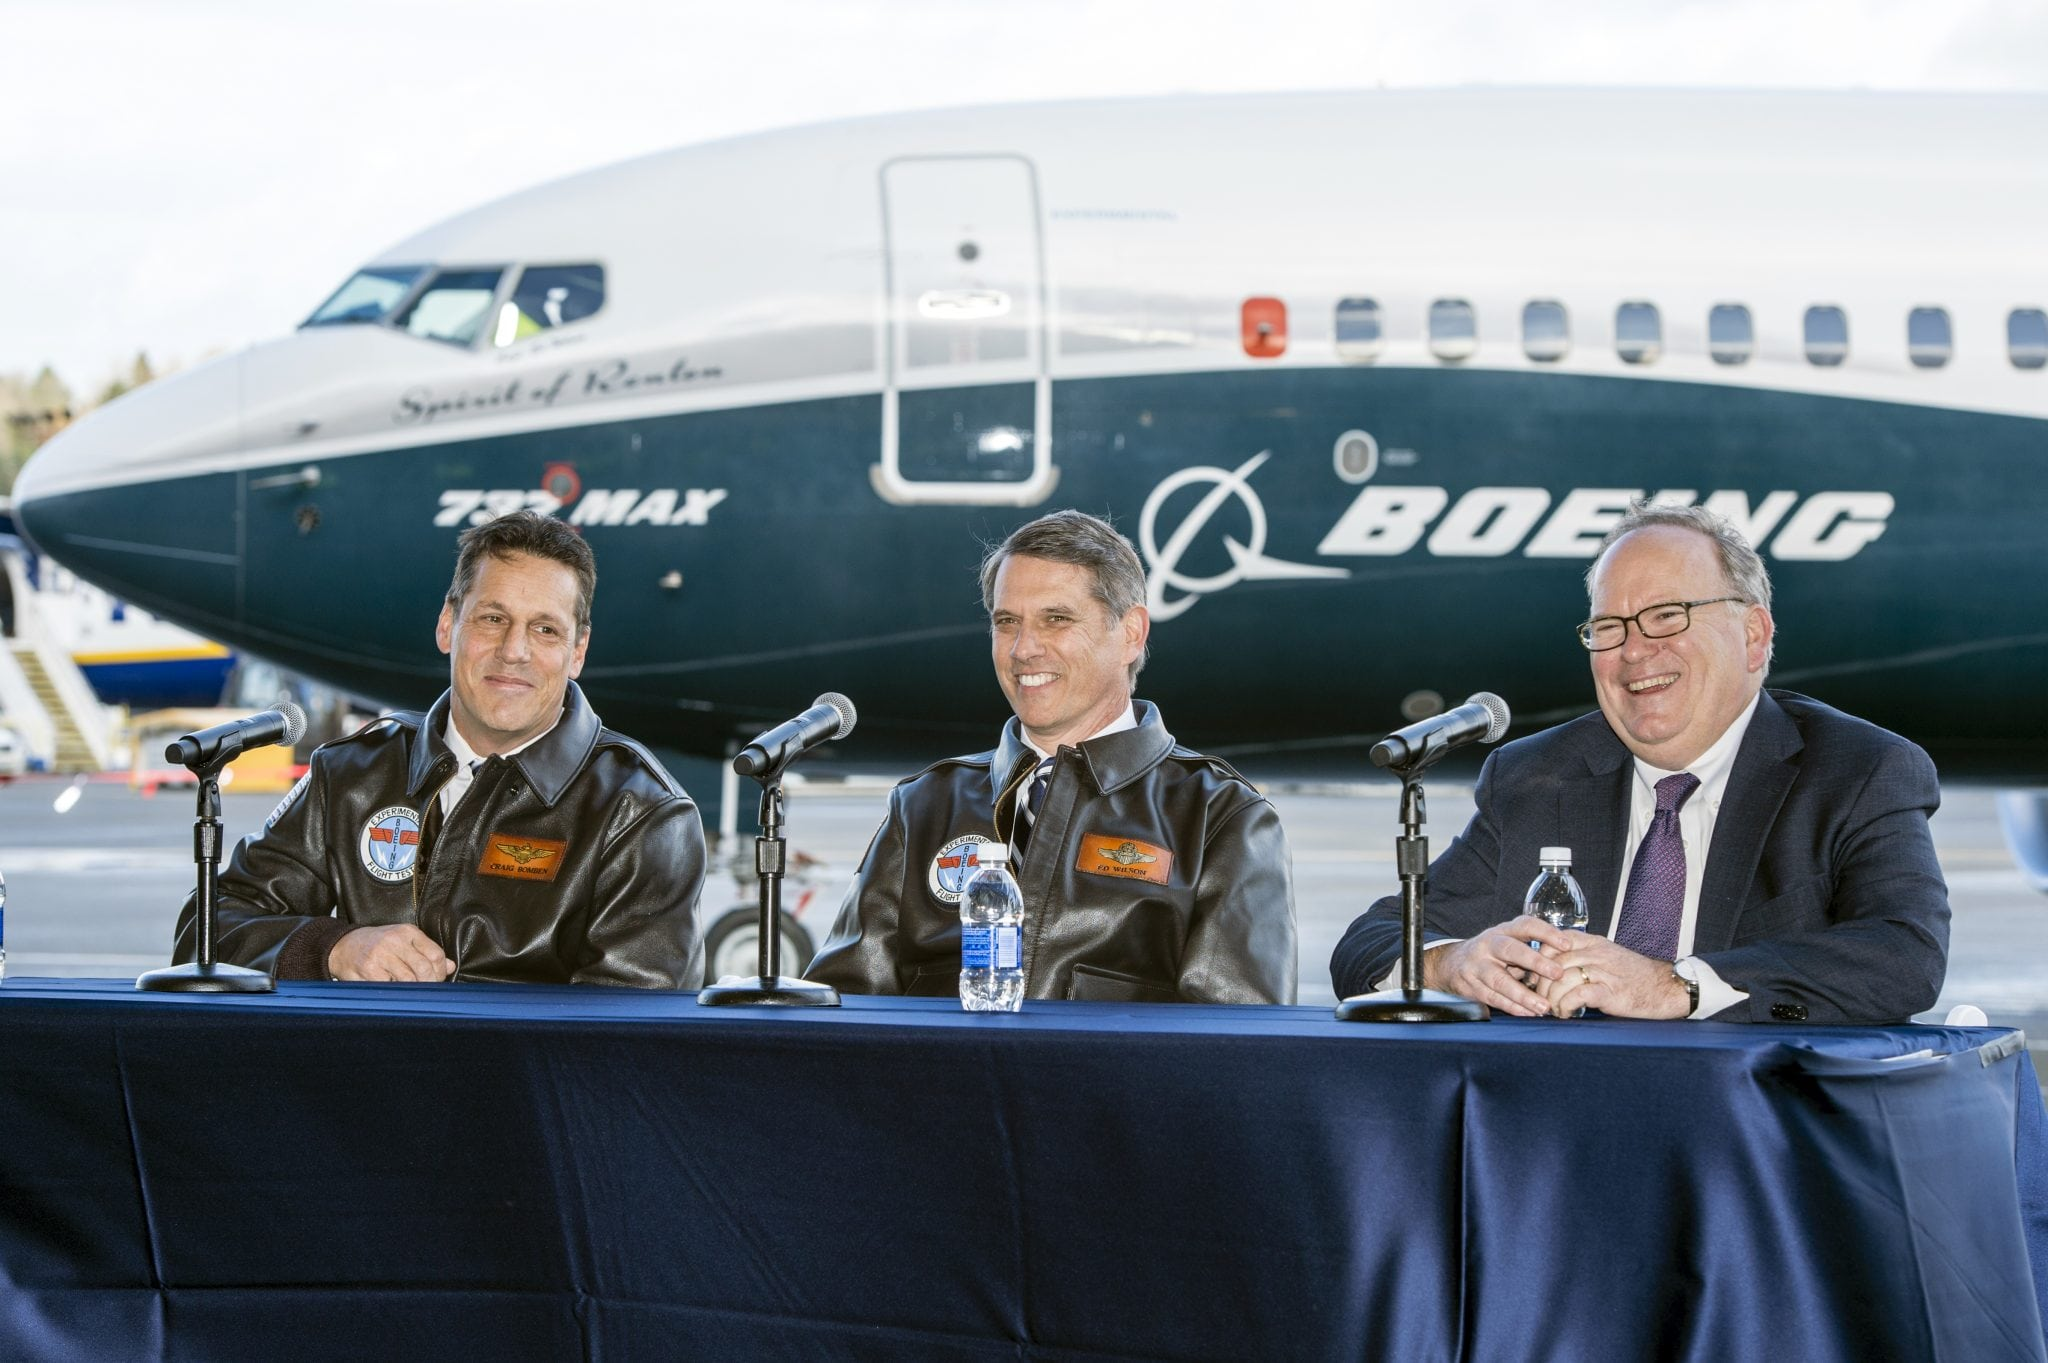 Following the successful first flight of the 737 MAX, (L-R) Boeing Chief Test Pilot and Vice President of Flight Operations Craig Bomben, 737 MAX Chief Pilot Ed Wilson and Keith Leverkuhn, vice president and general manager, 737 MAX program briefed news media